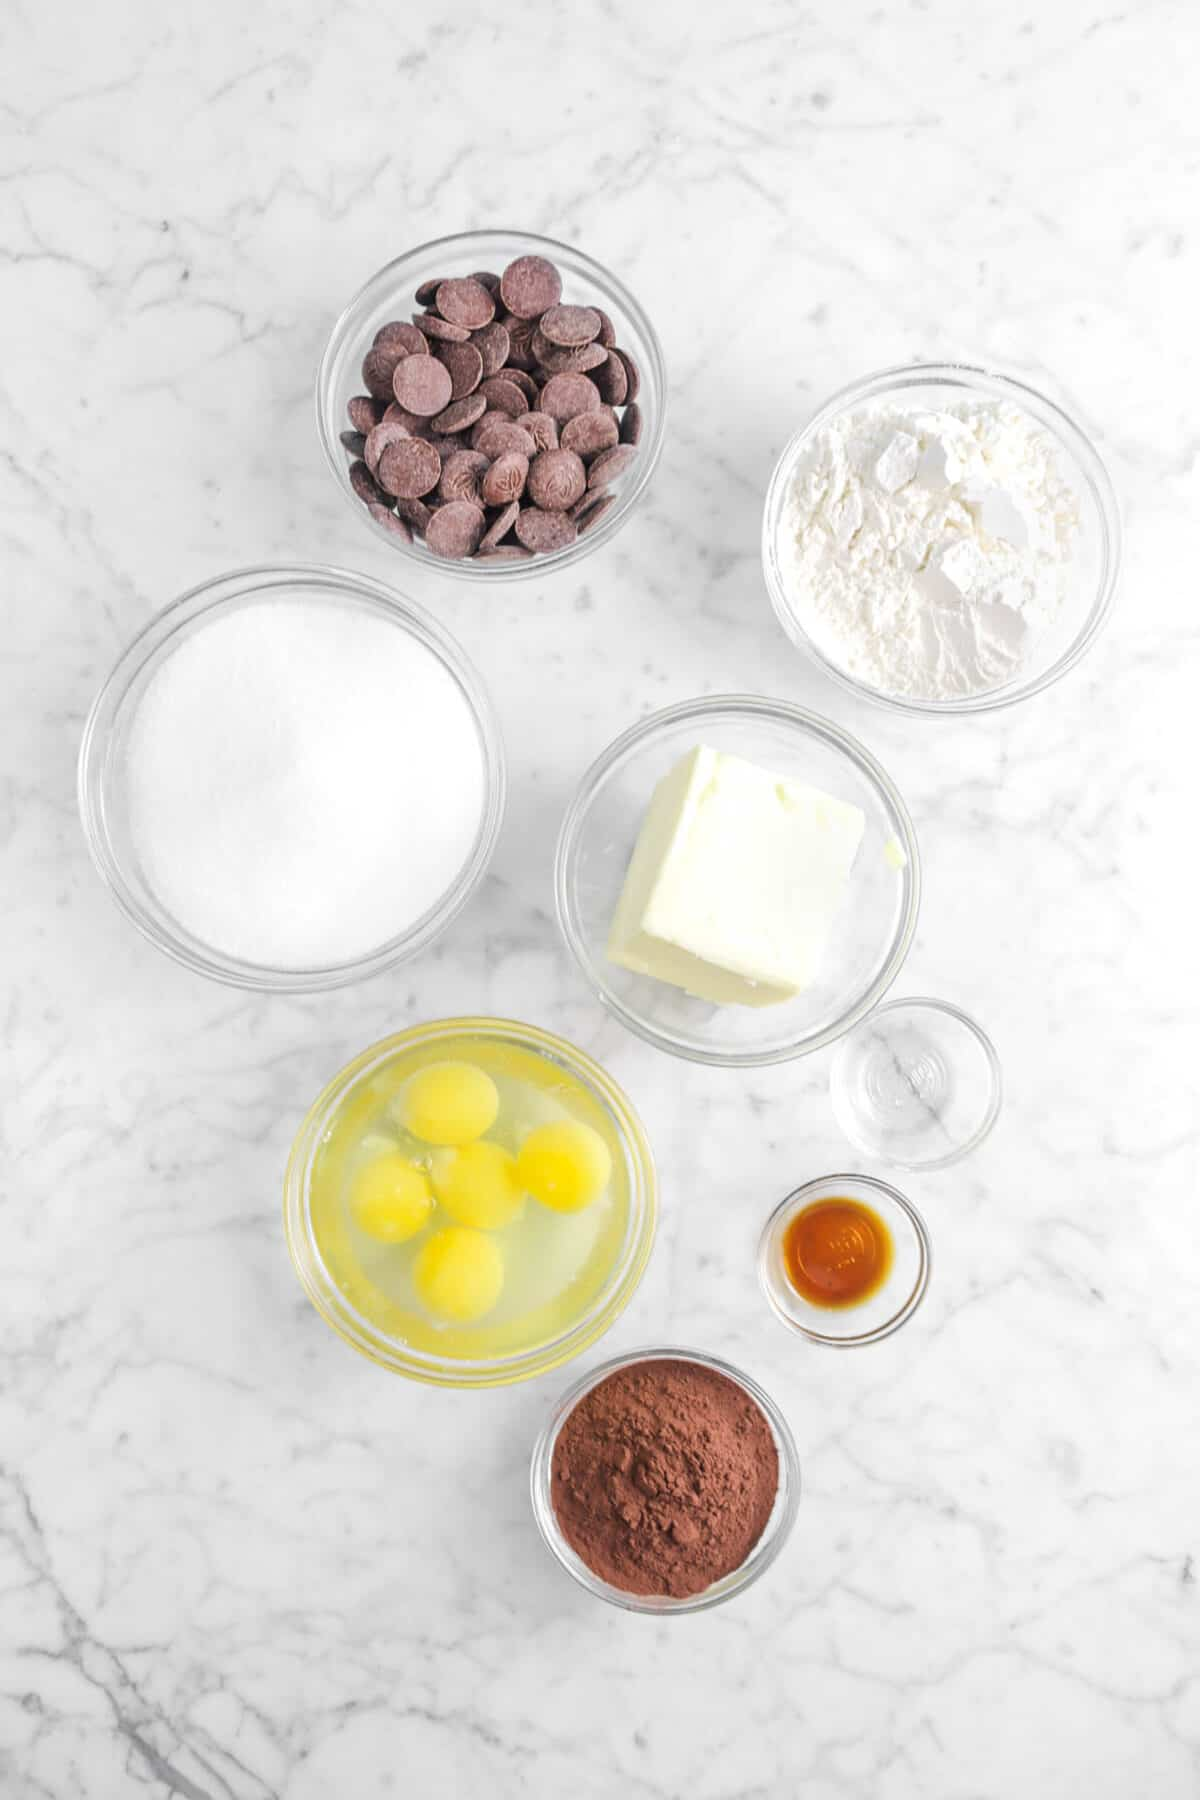 chocolate, flour, sugar, butter, eggs, peppermint oil, vanilla, and cocoa powder in glass bowls